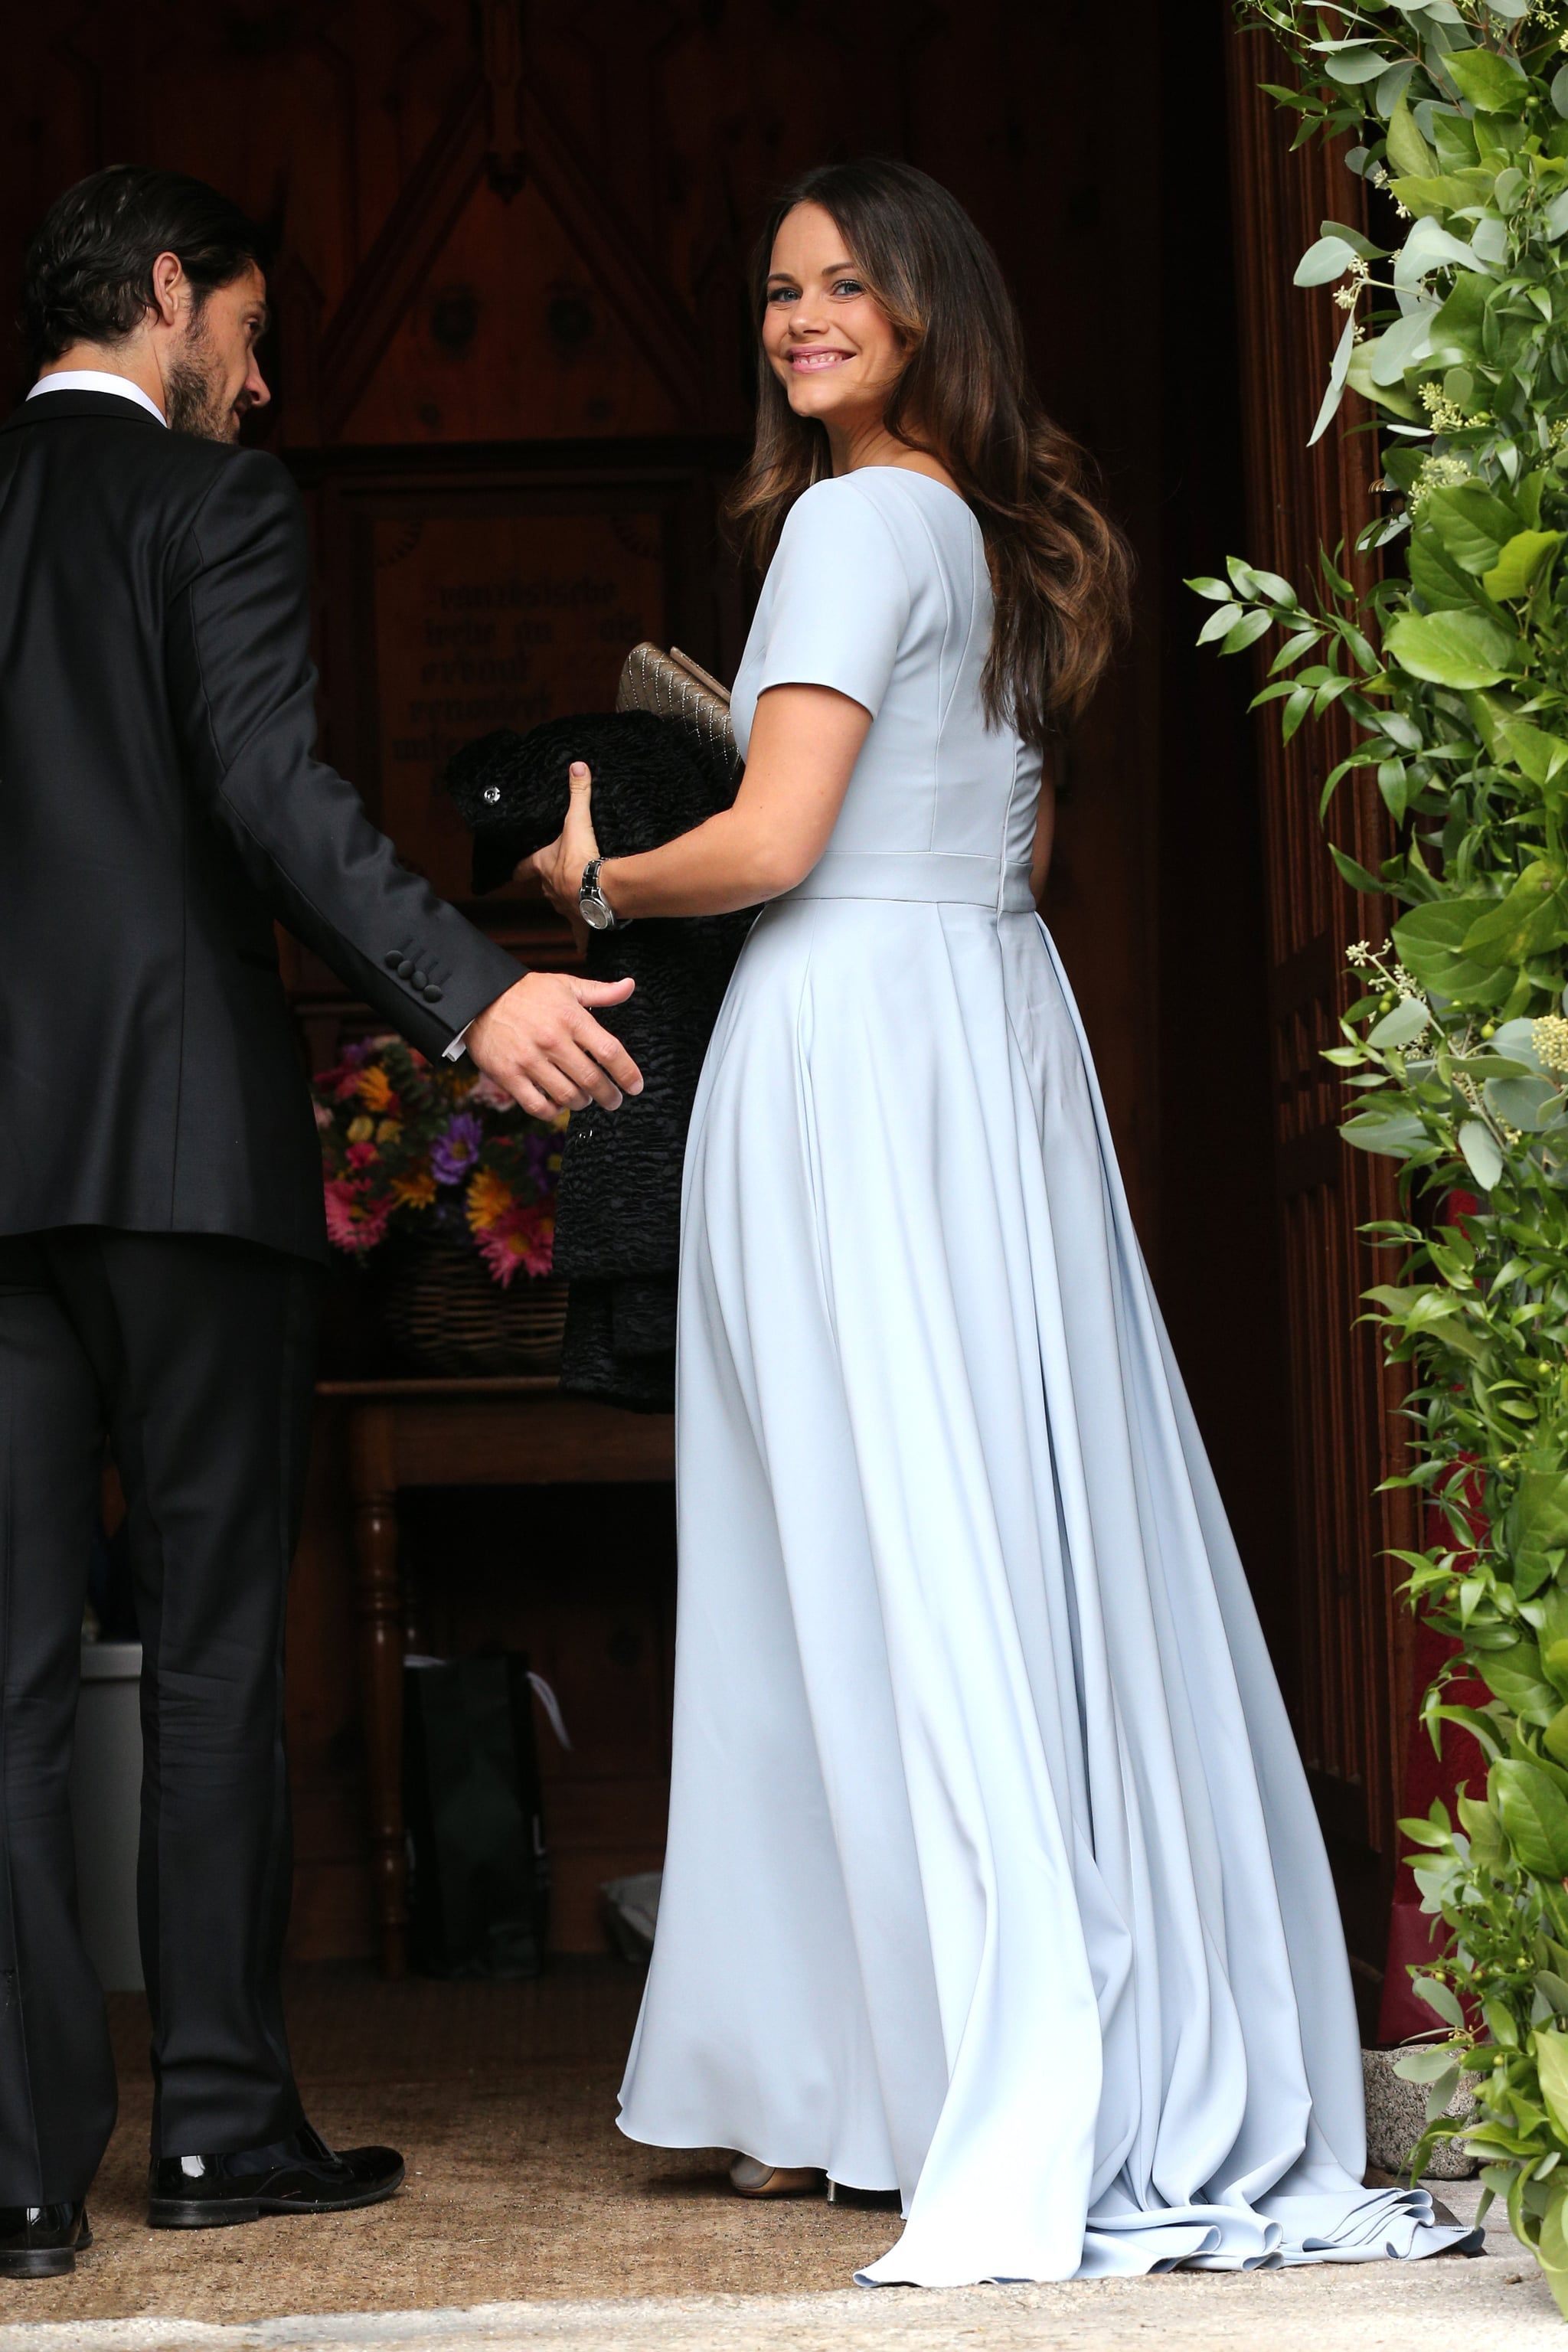 Prince Carl Philip And Princess Sofia Look Like An Absolute Dream At This Royal Wedding Princess Sofia Princess Sofia Of Sweden Prince Carl Philip [ 3072 x 2048 Pixel ]